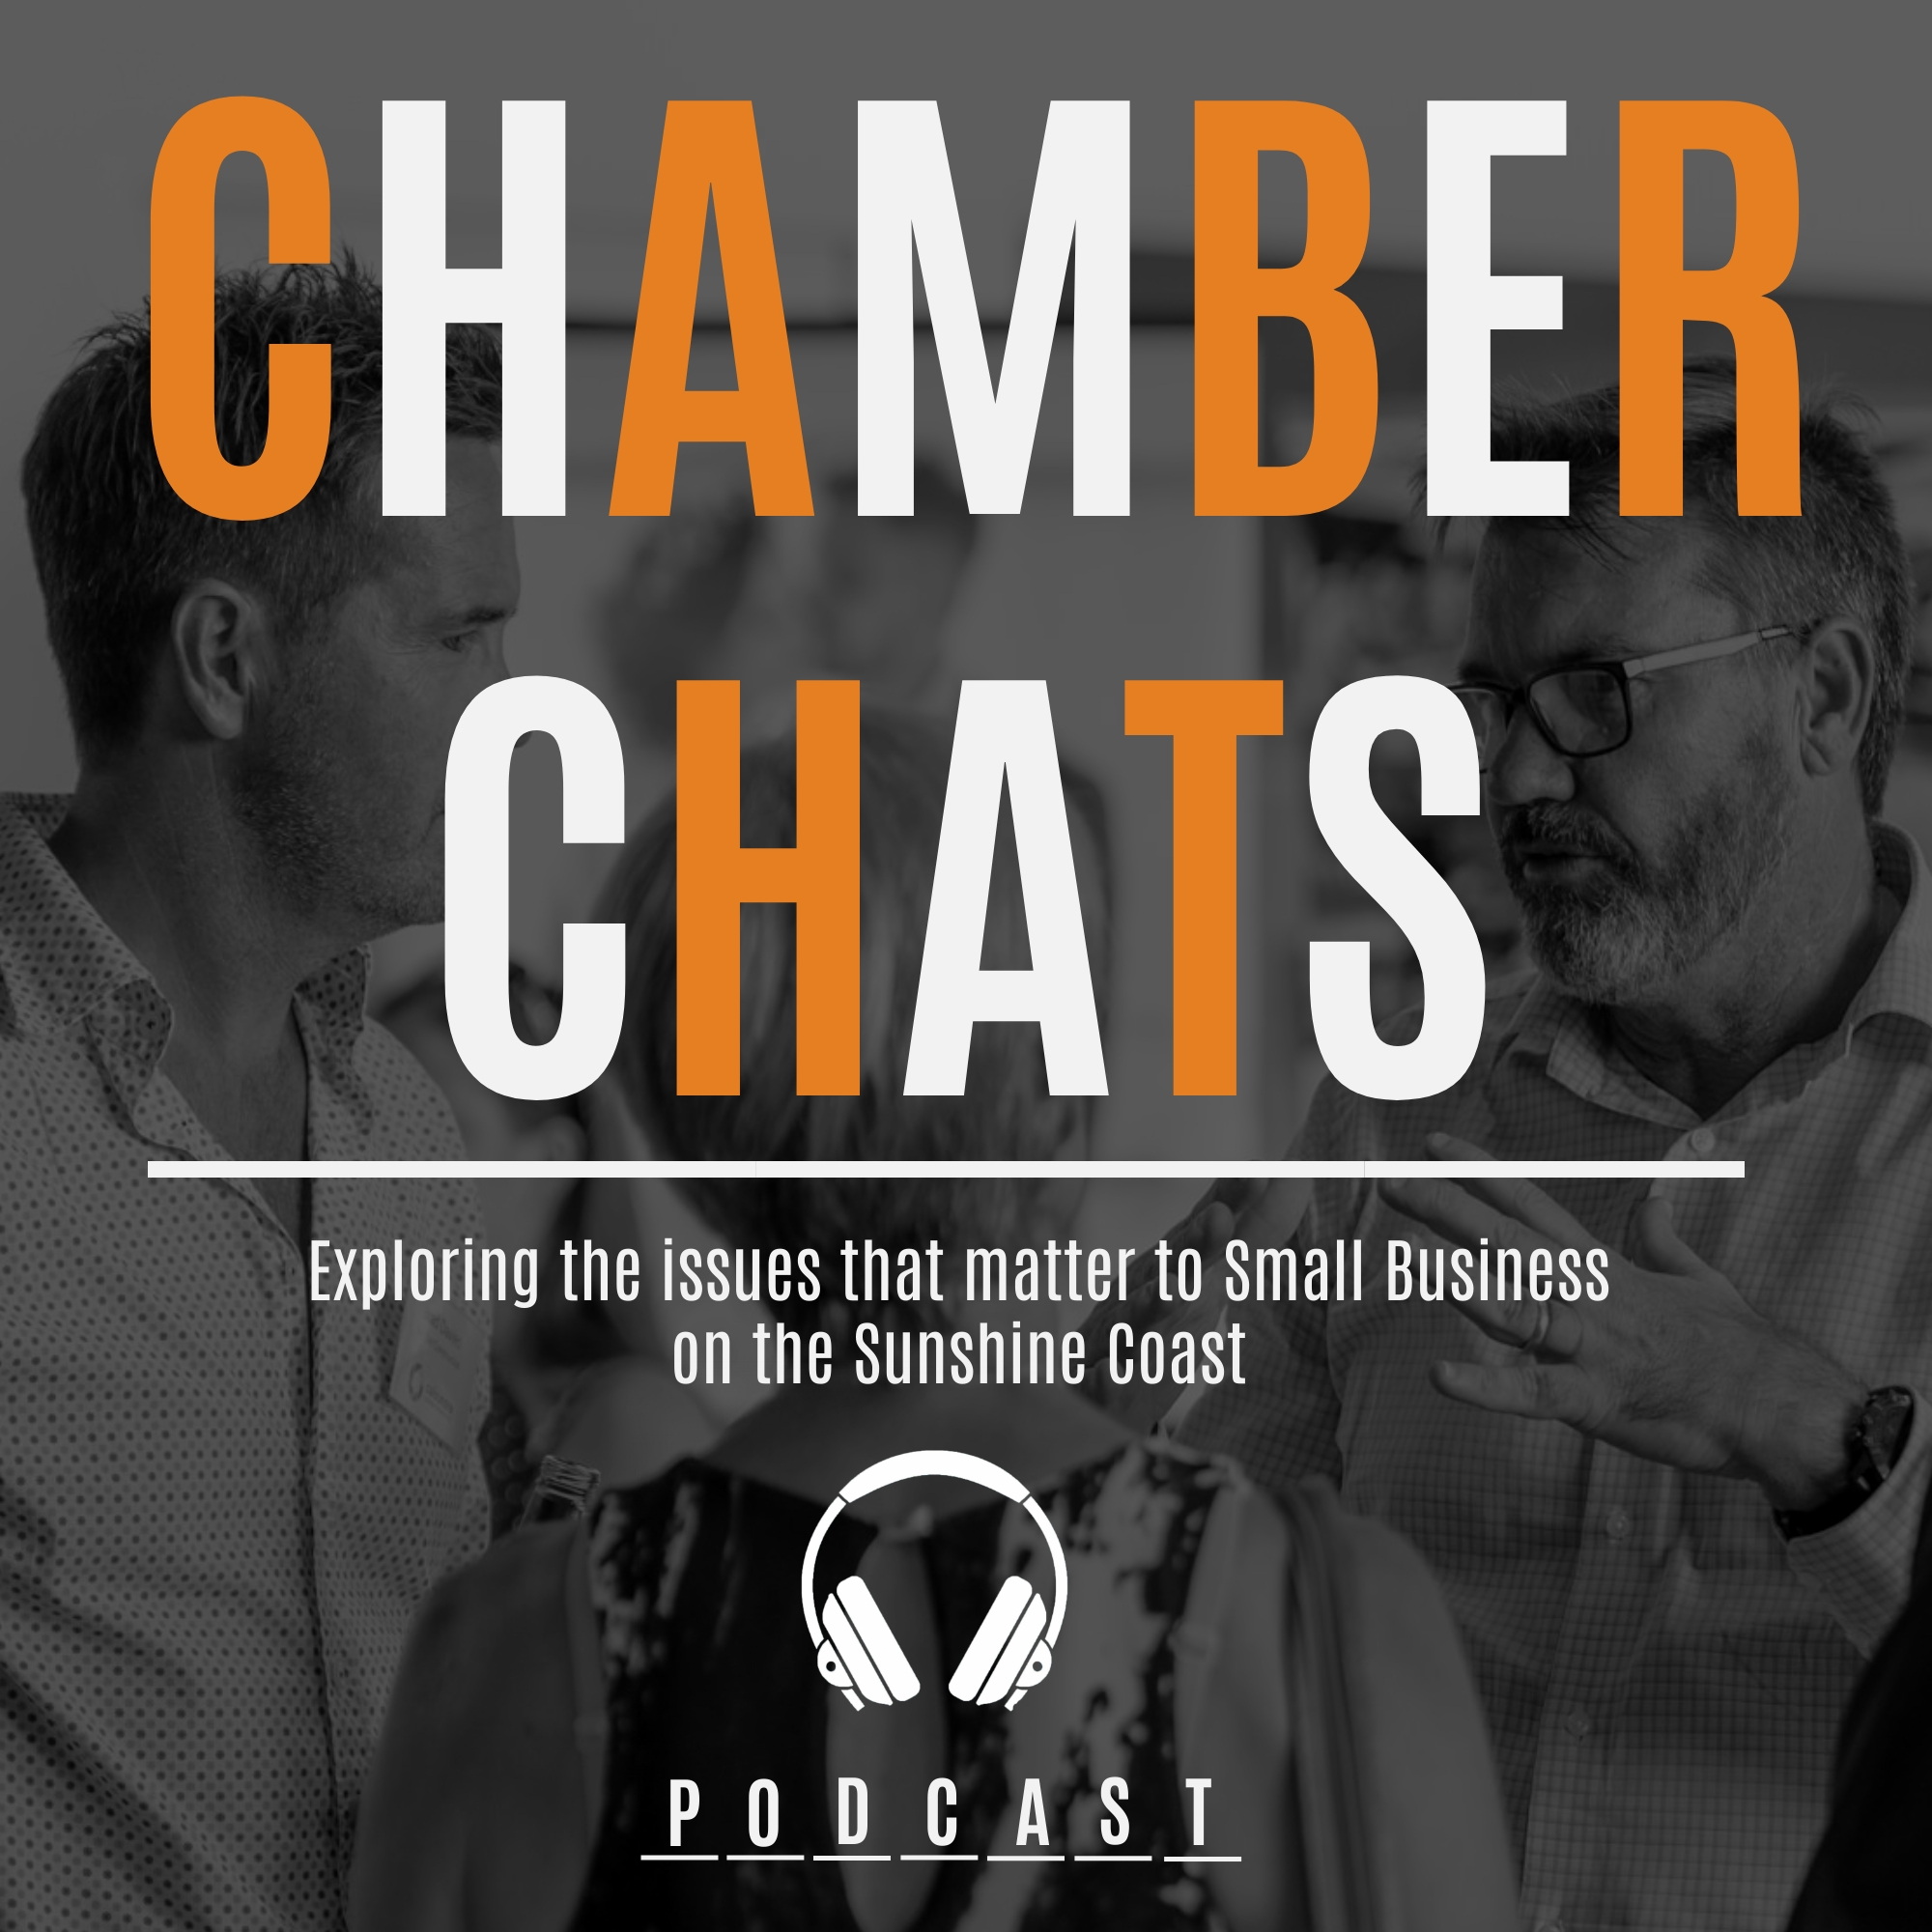 Caloundra Chamber of Commerce Podcast Chamber Chats